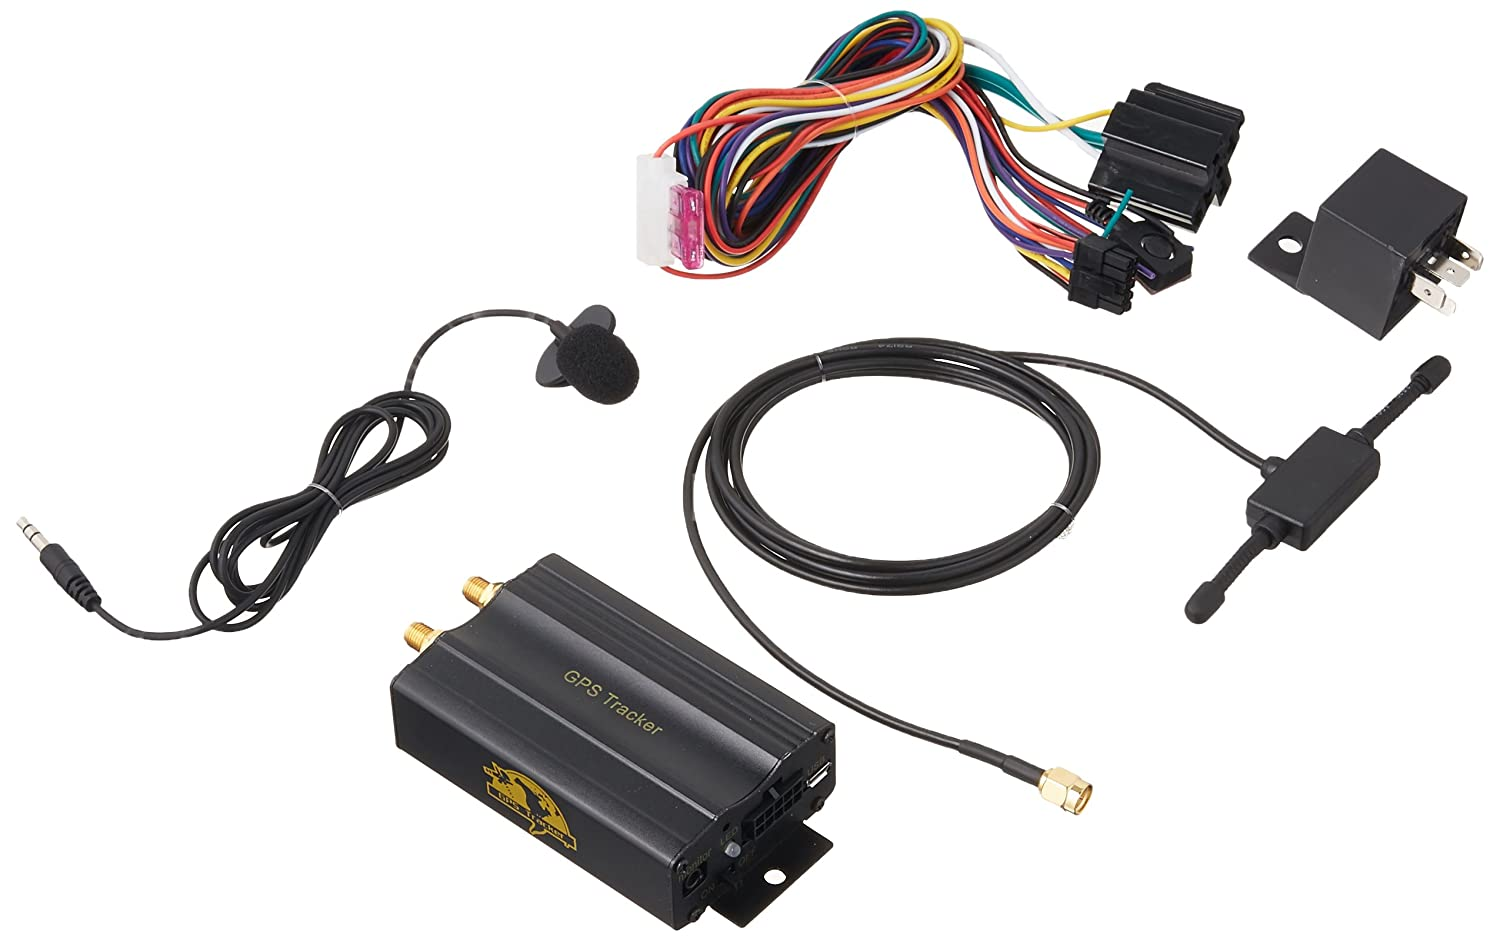 81IB6jbNQmL._SL1500_ amazon com coban gps gprs sms real time tracker tk103a quad band Wiring Harness Diagram at mifinder.co